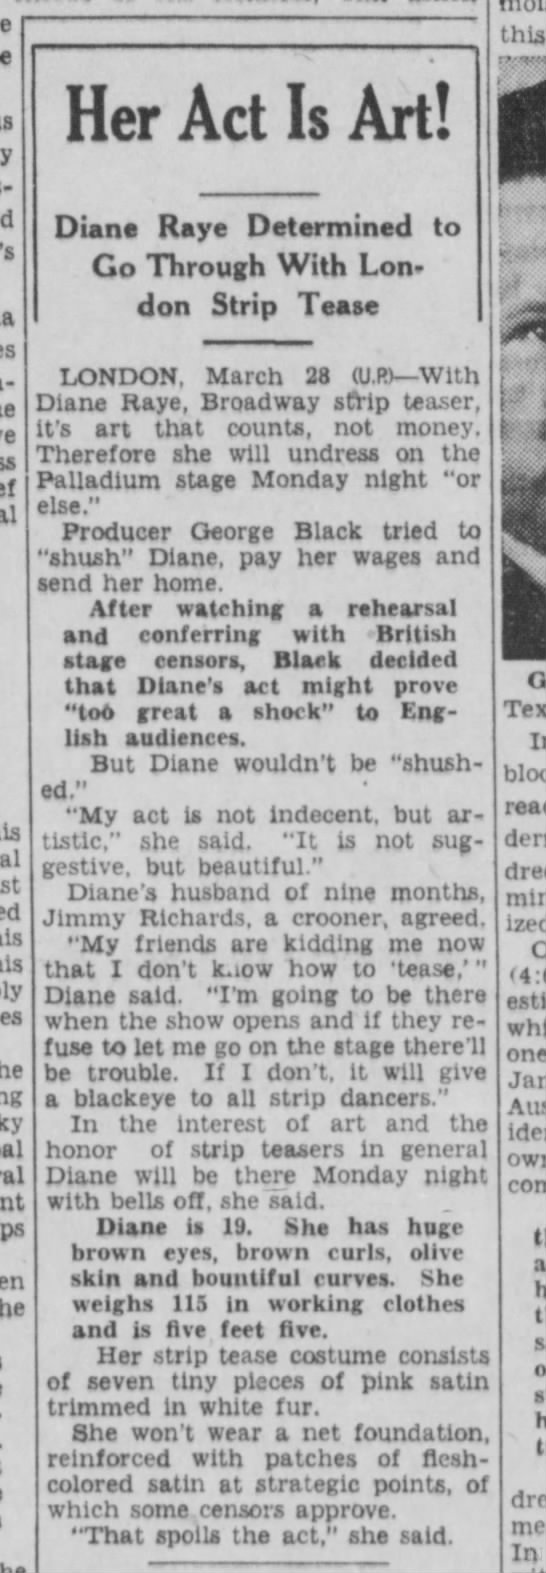 Pottstown Mercury March 29, 1937 Diane and Jimmy in the news -